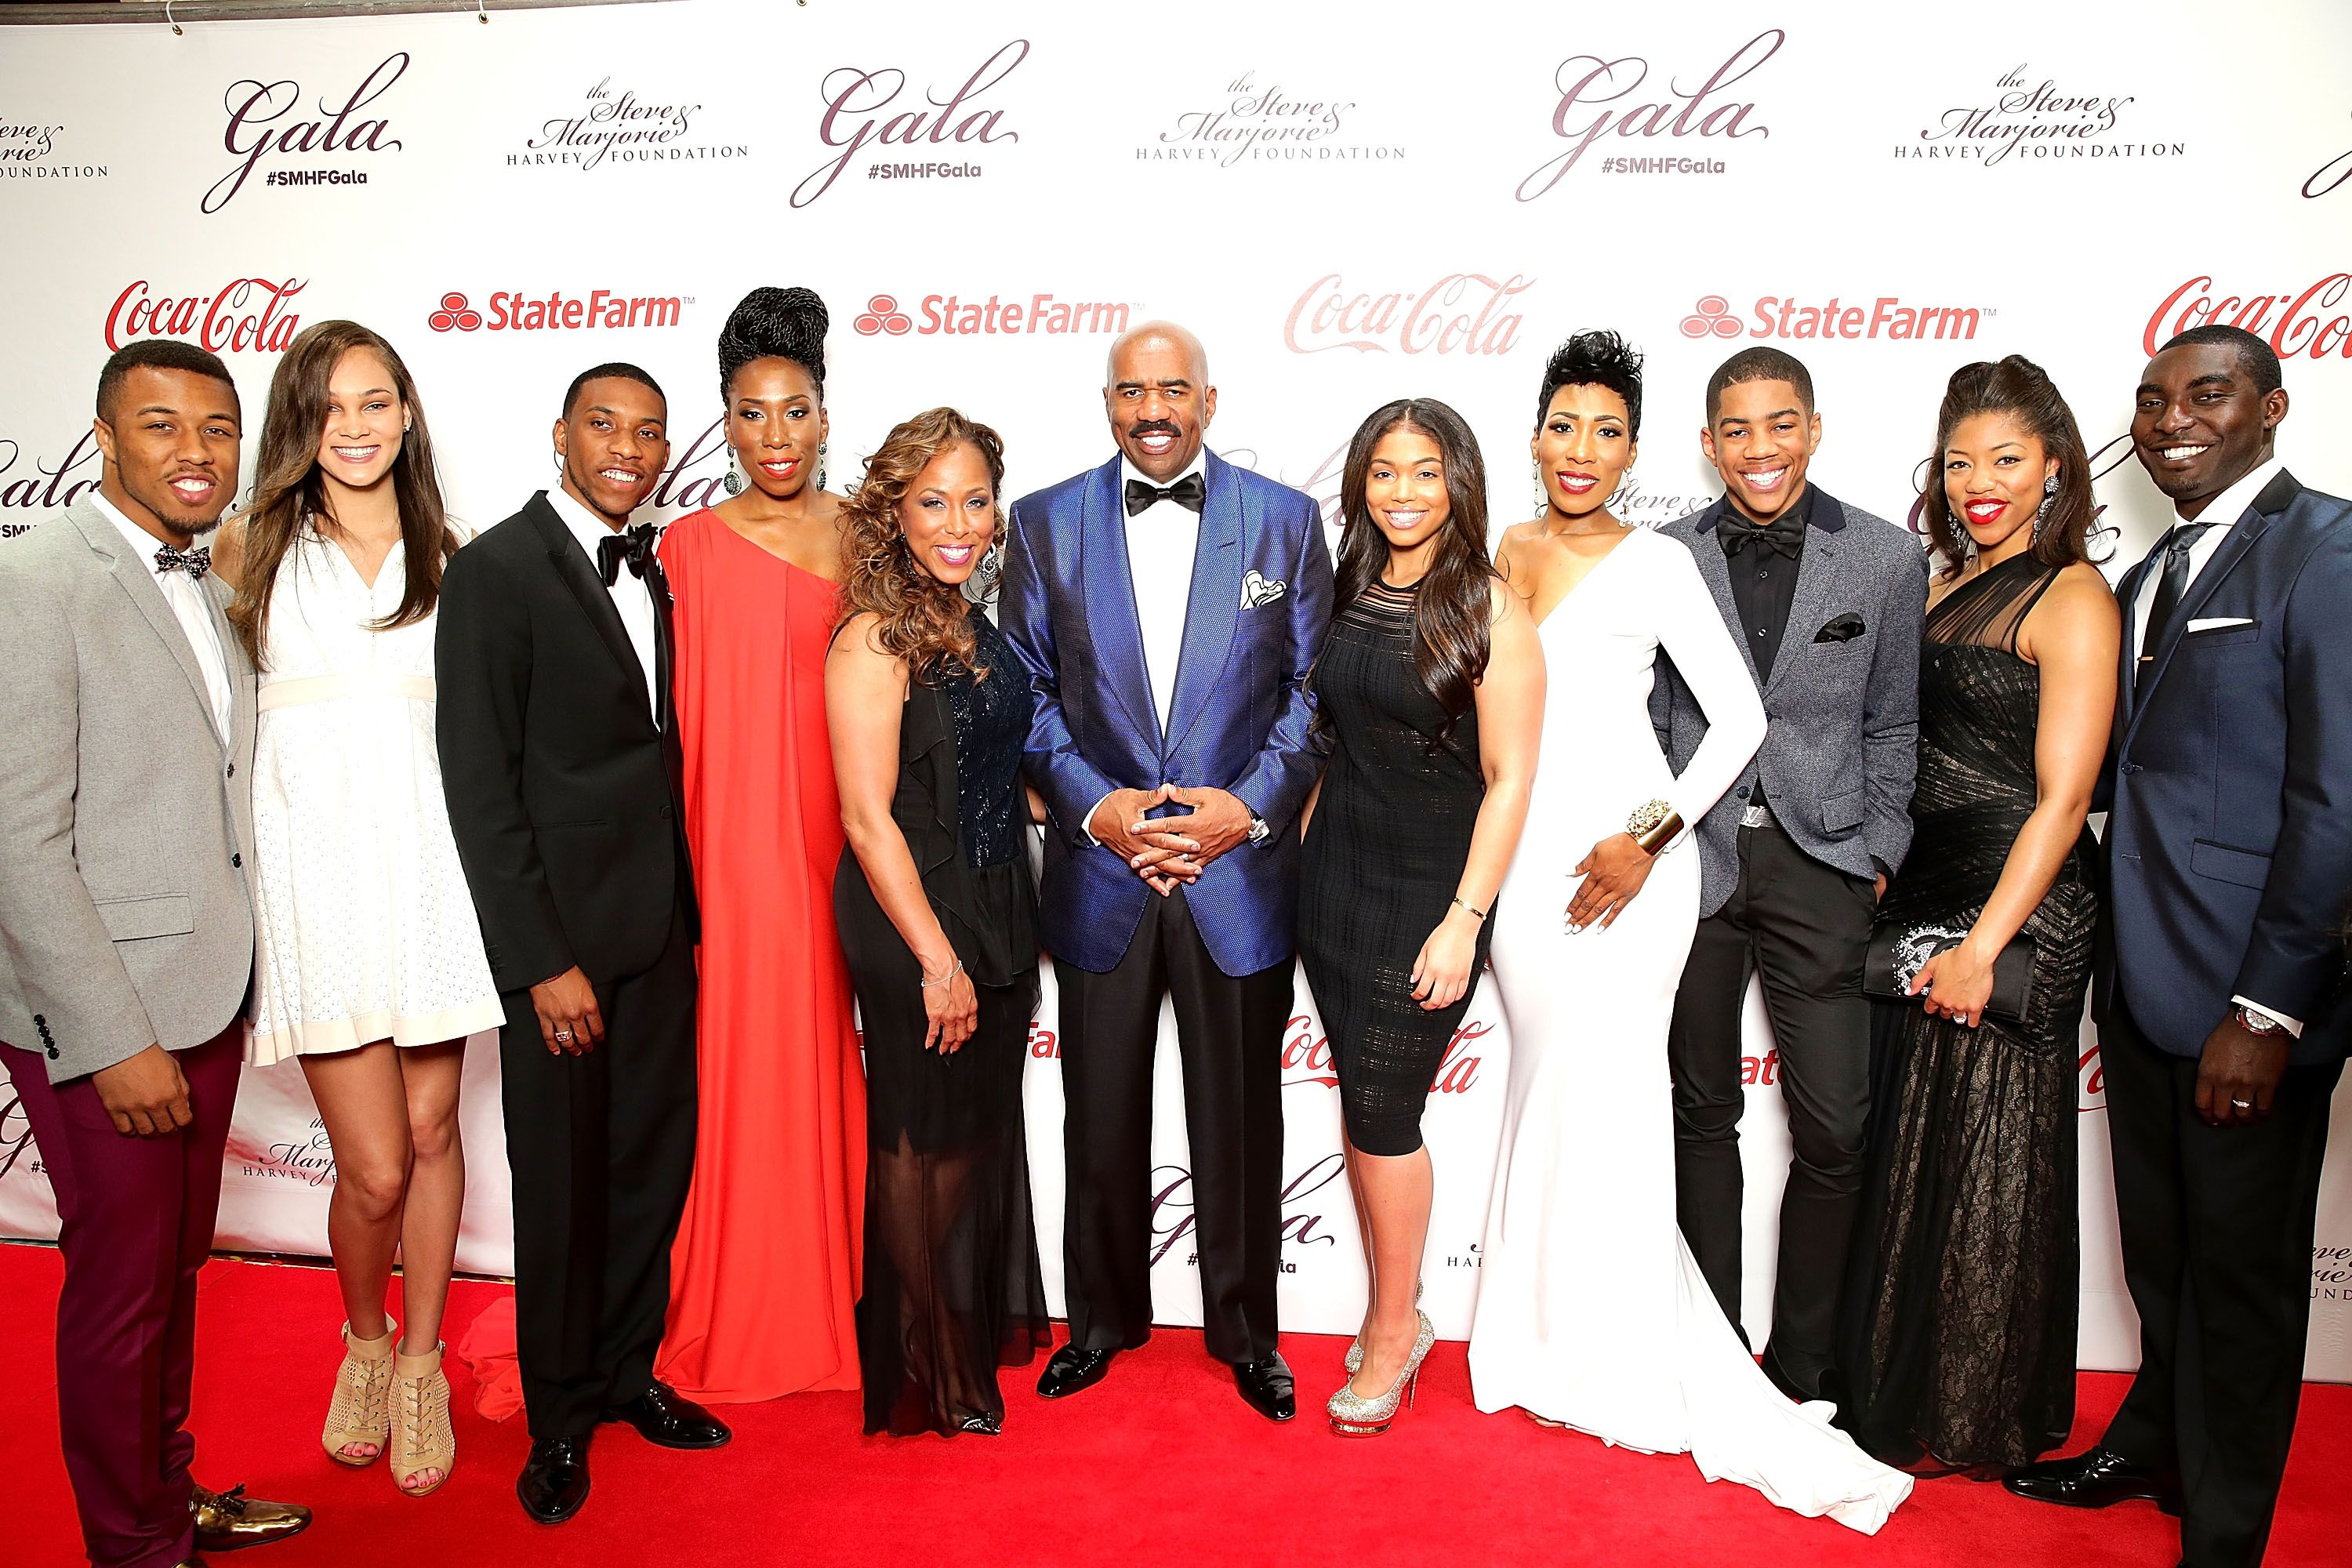 Steve and Marjorie Harvey with their blended family at the Steve & Marjorie Harvey Foundation Gala/ Source: Getty Images